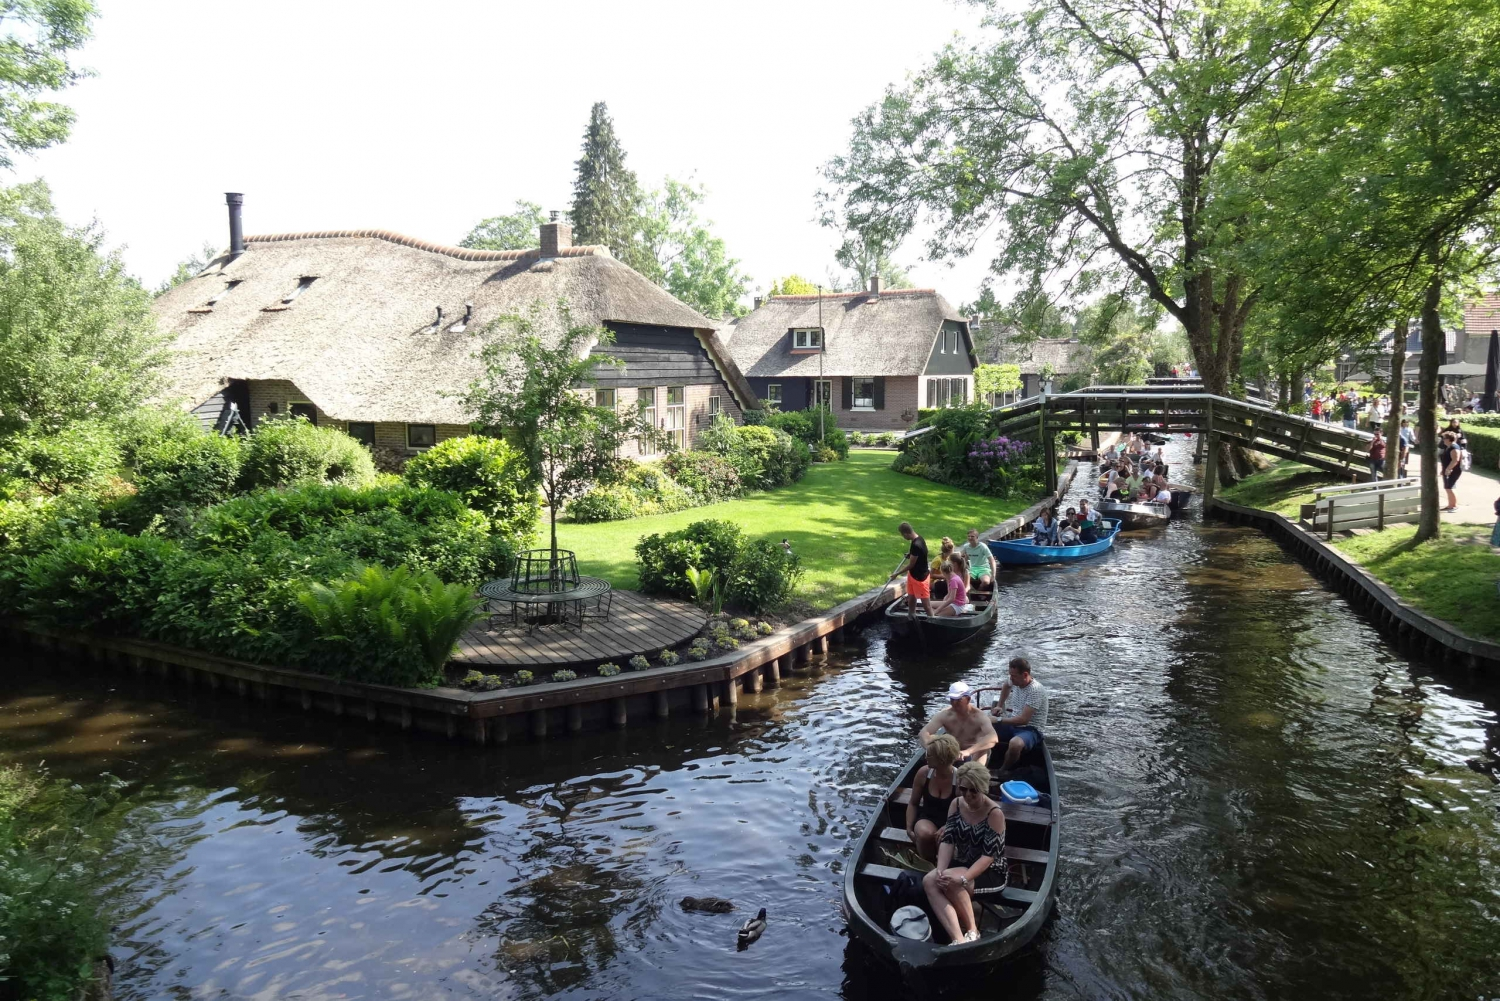 From Day Trip to Giethoorn by Bus and Boat